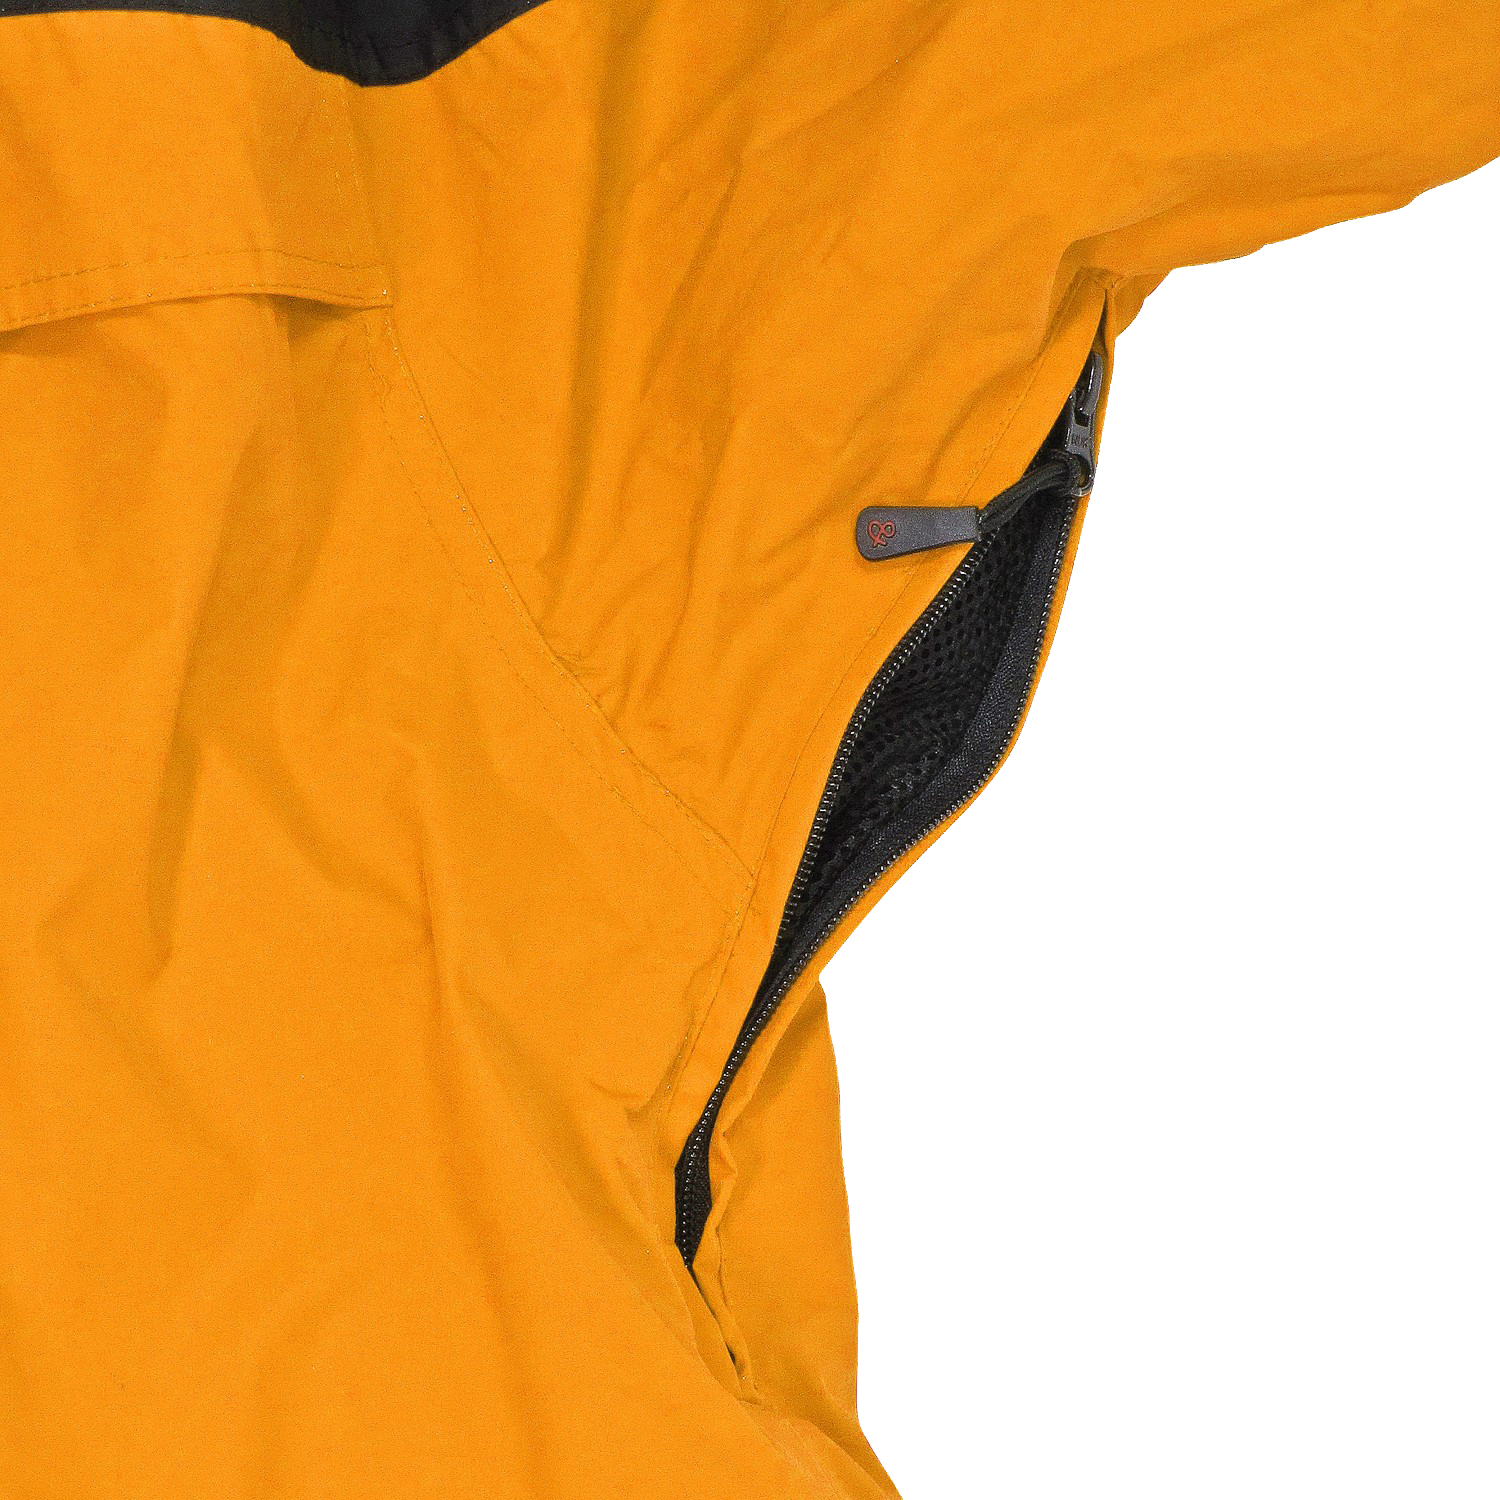 Detail Image to 3in1 jacket in orange by marc&mark in oversizes up to 10XL